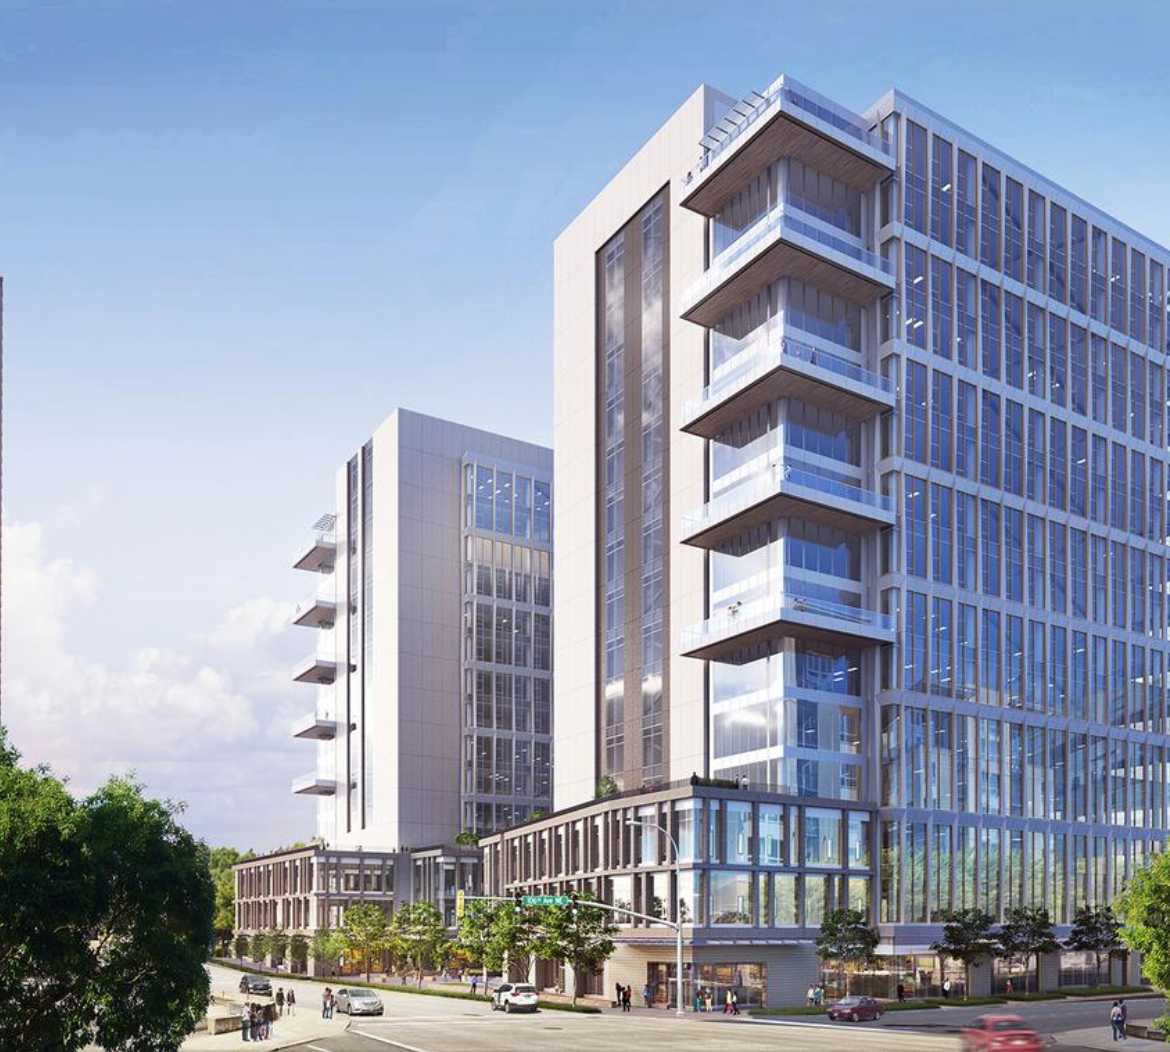 Amazon strikes again by leasing Binary towers, a 715,000 sq ft complex in downtown Bellevue which is scheduled for completion in 2022.